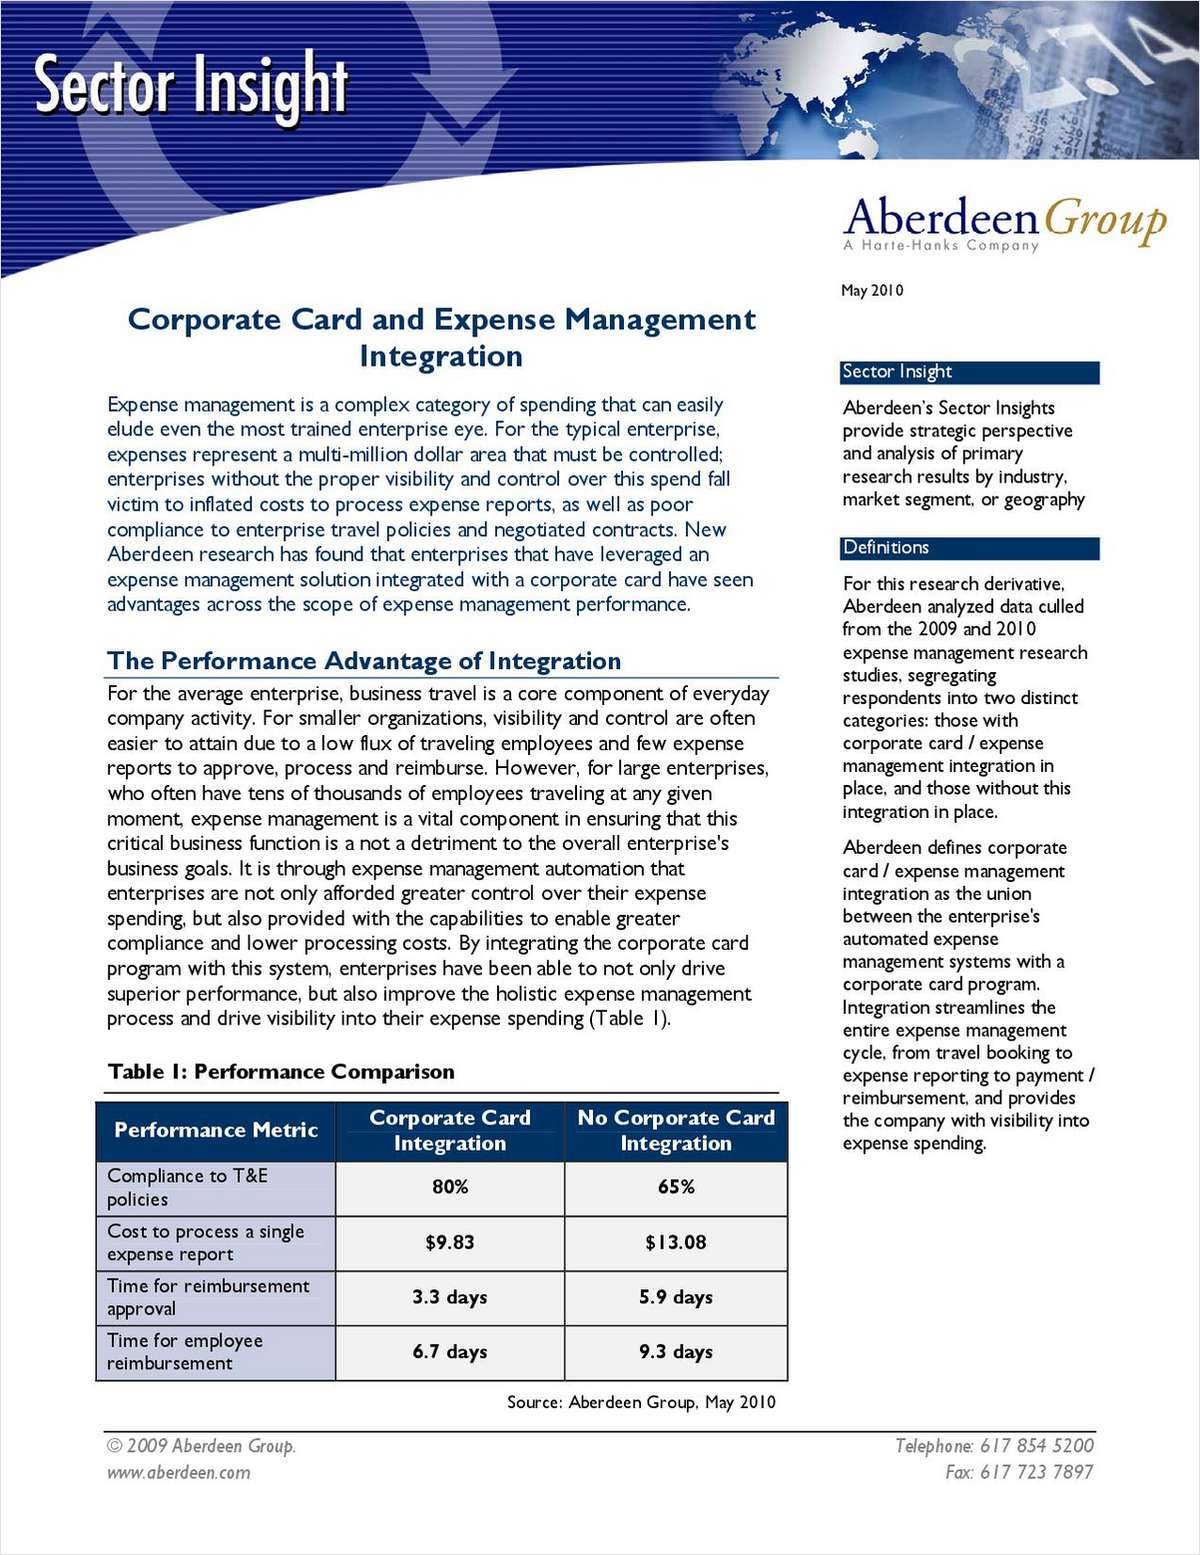 Corporate Card and Expense Management Integration